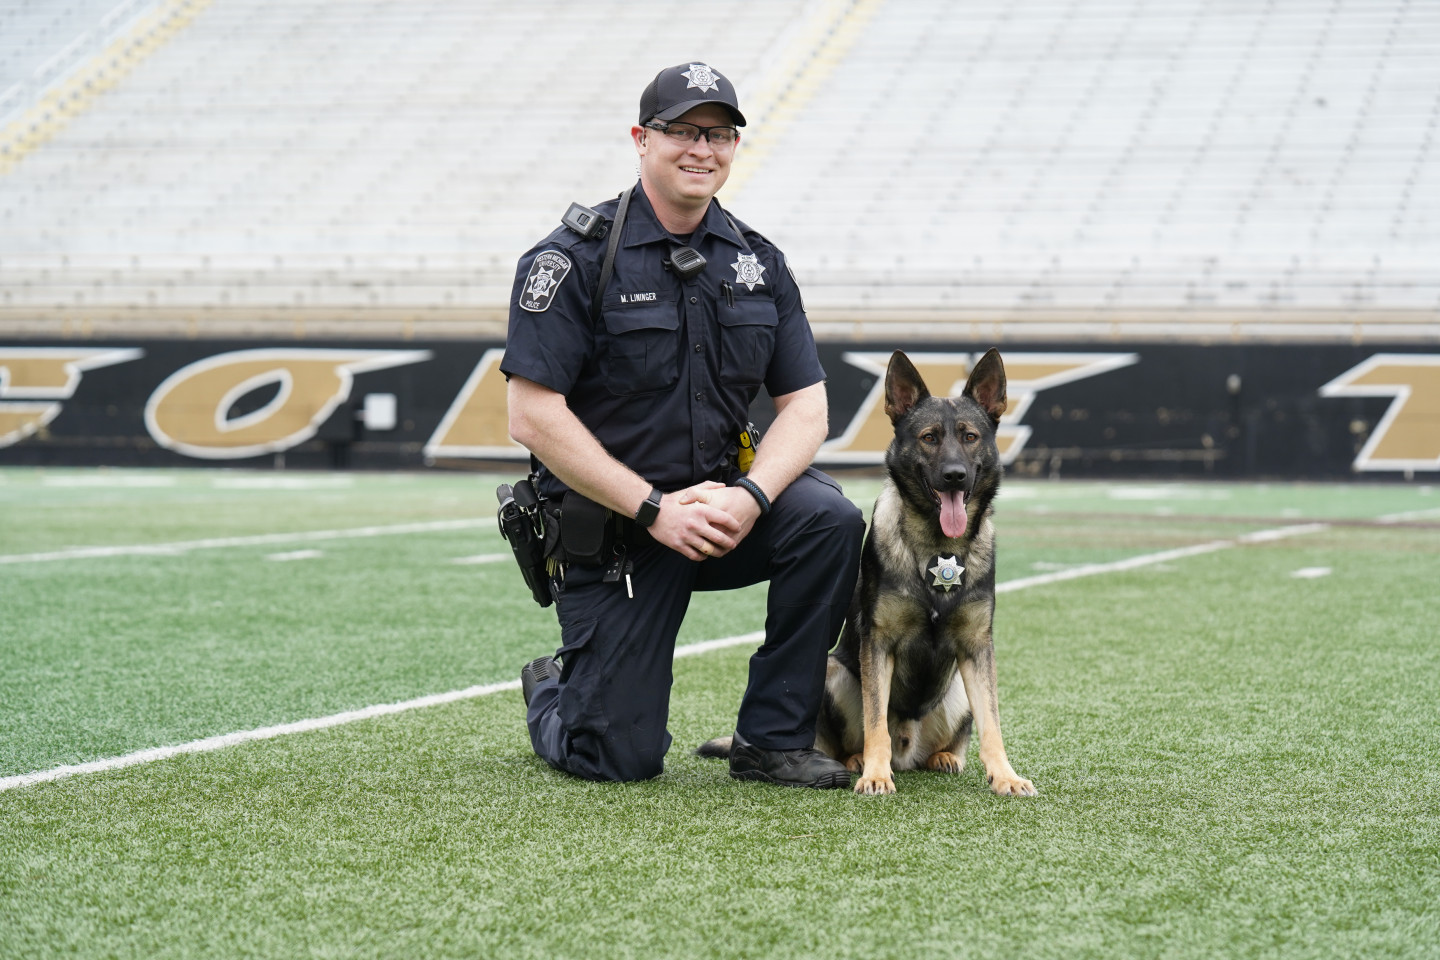 Officer Lininger and his police K9 on the field at Waldo Stadium.